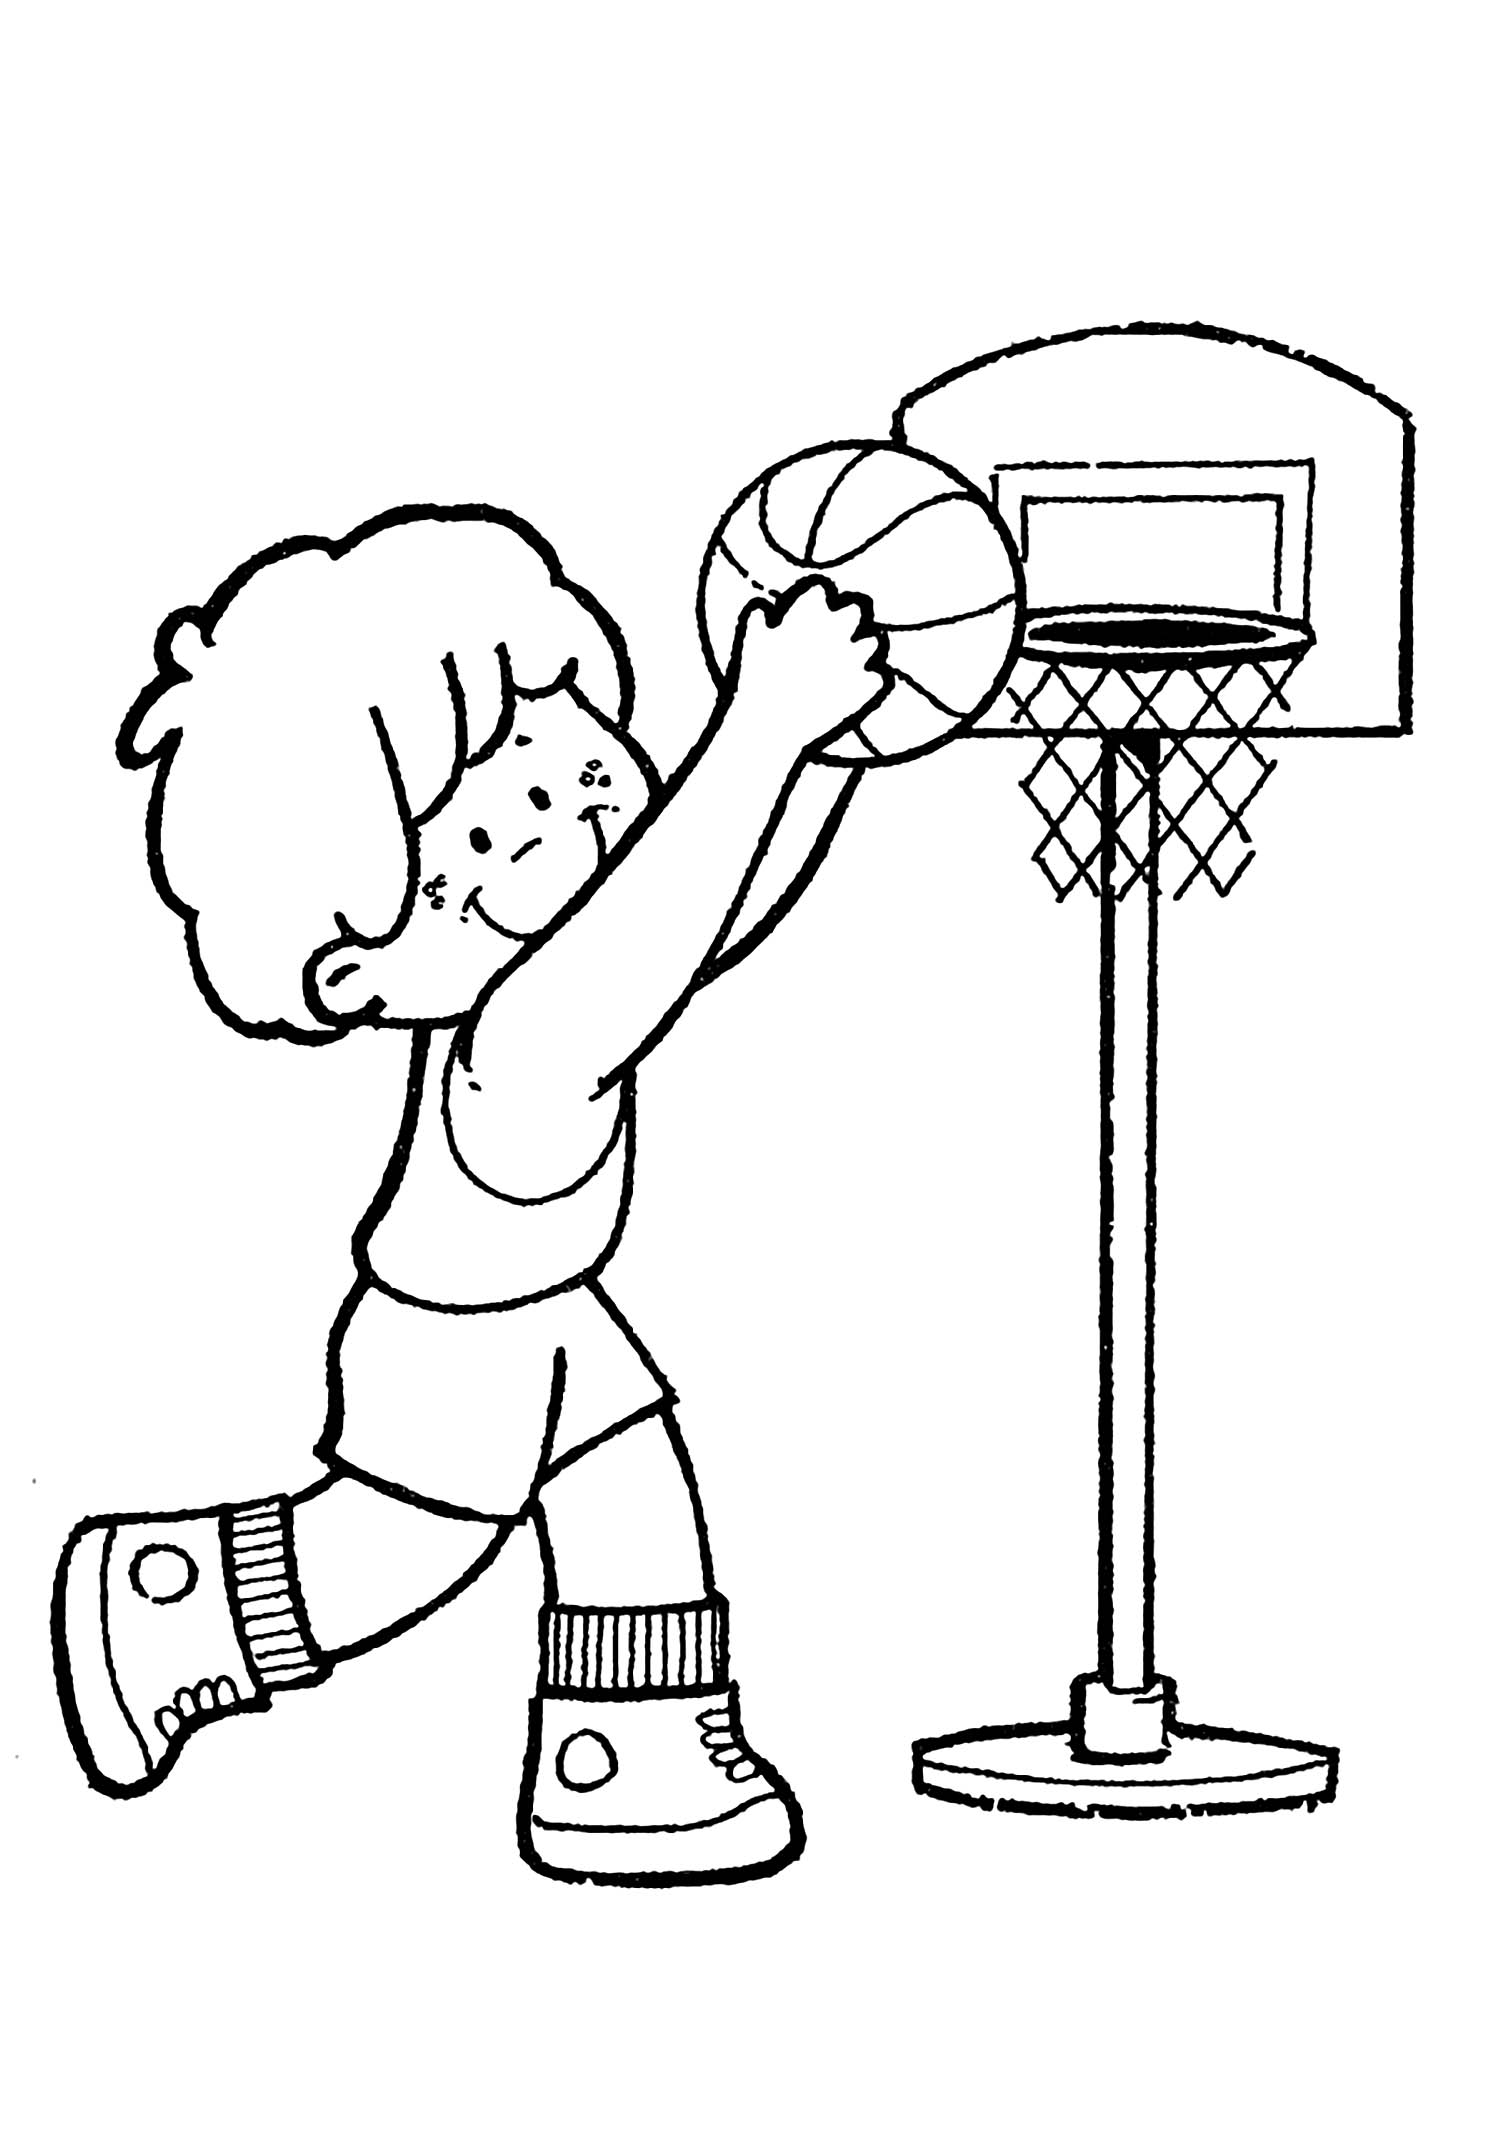 Simple Basketball coloring page for kids